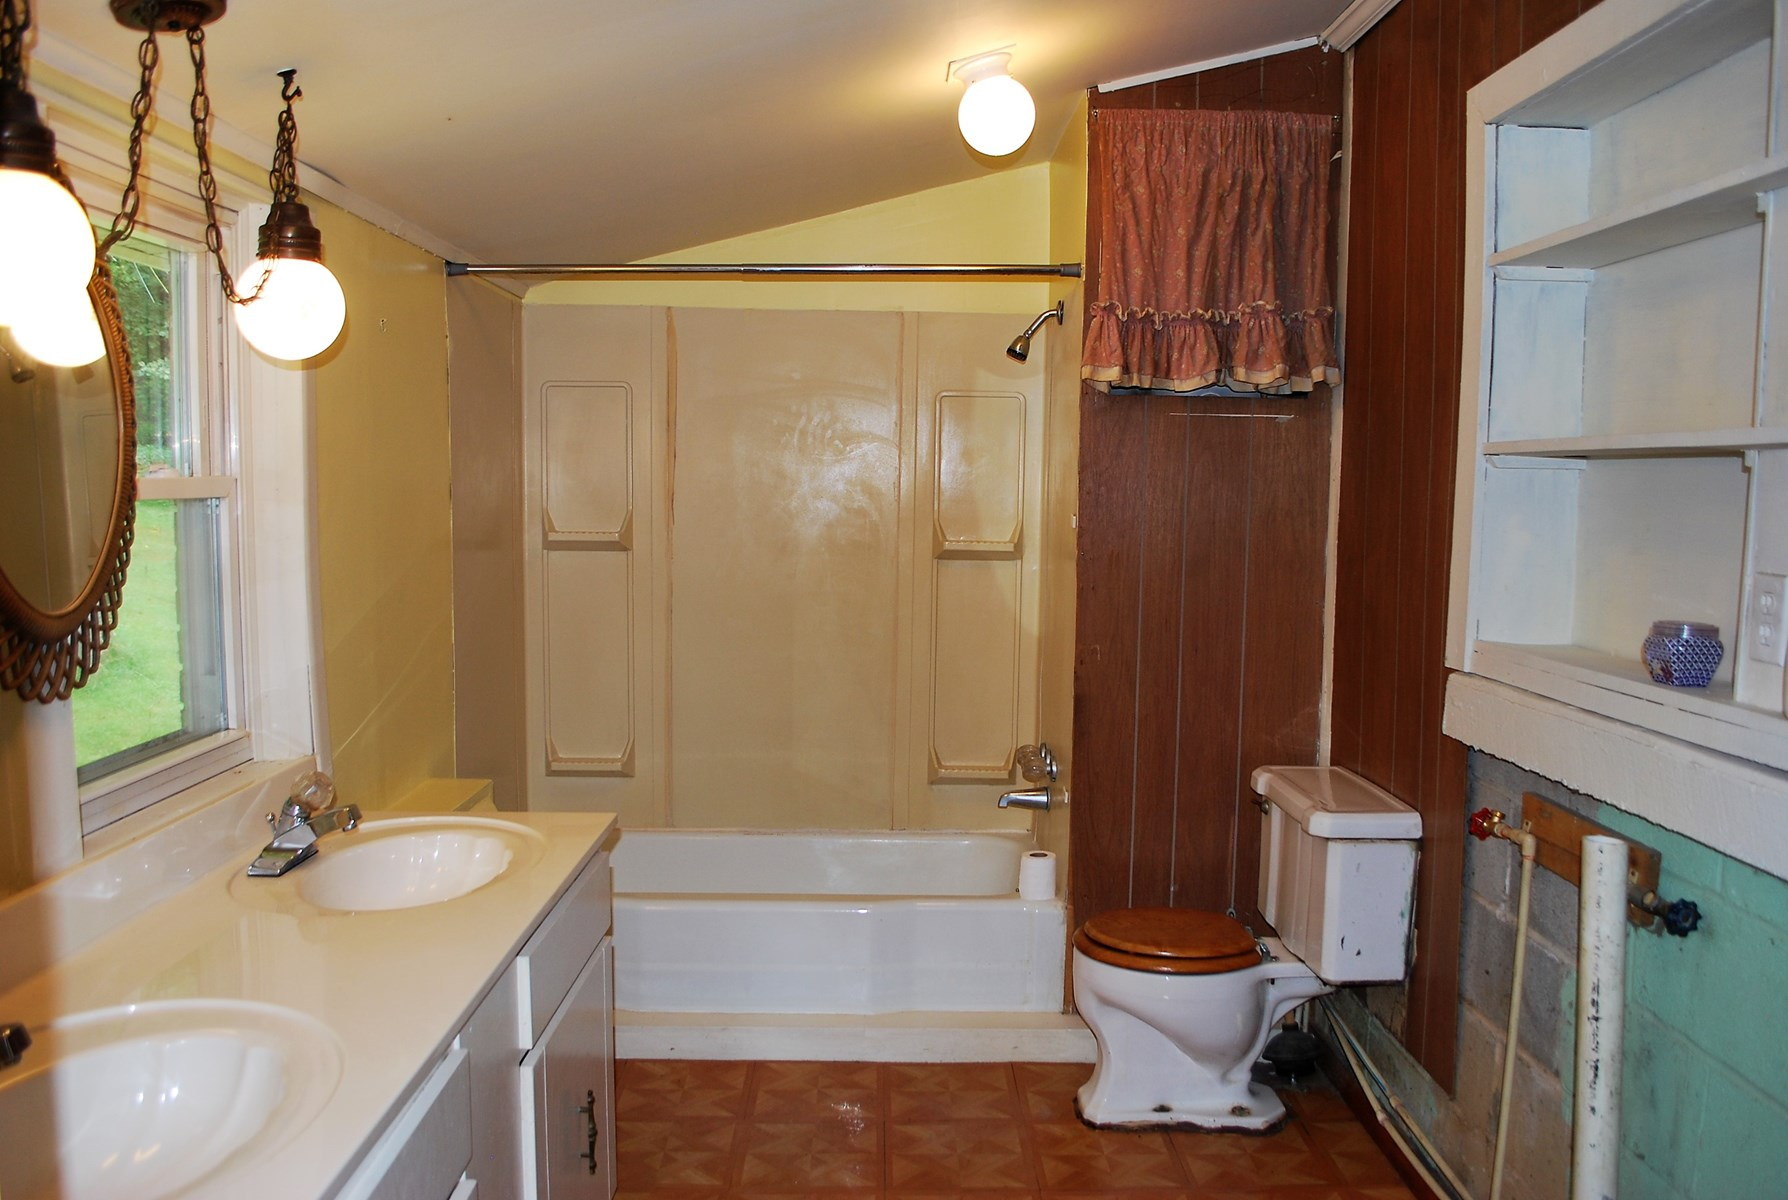 Full bath and utility room off the mud room